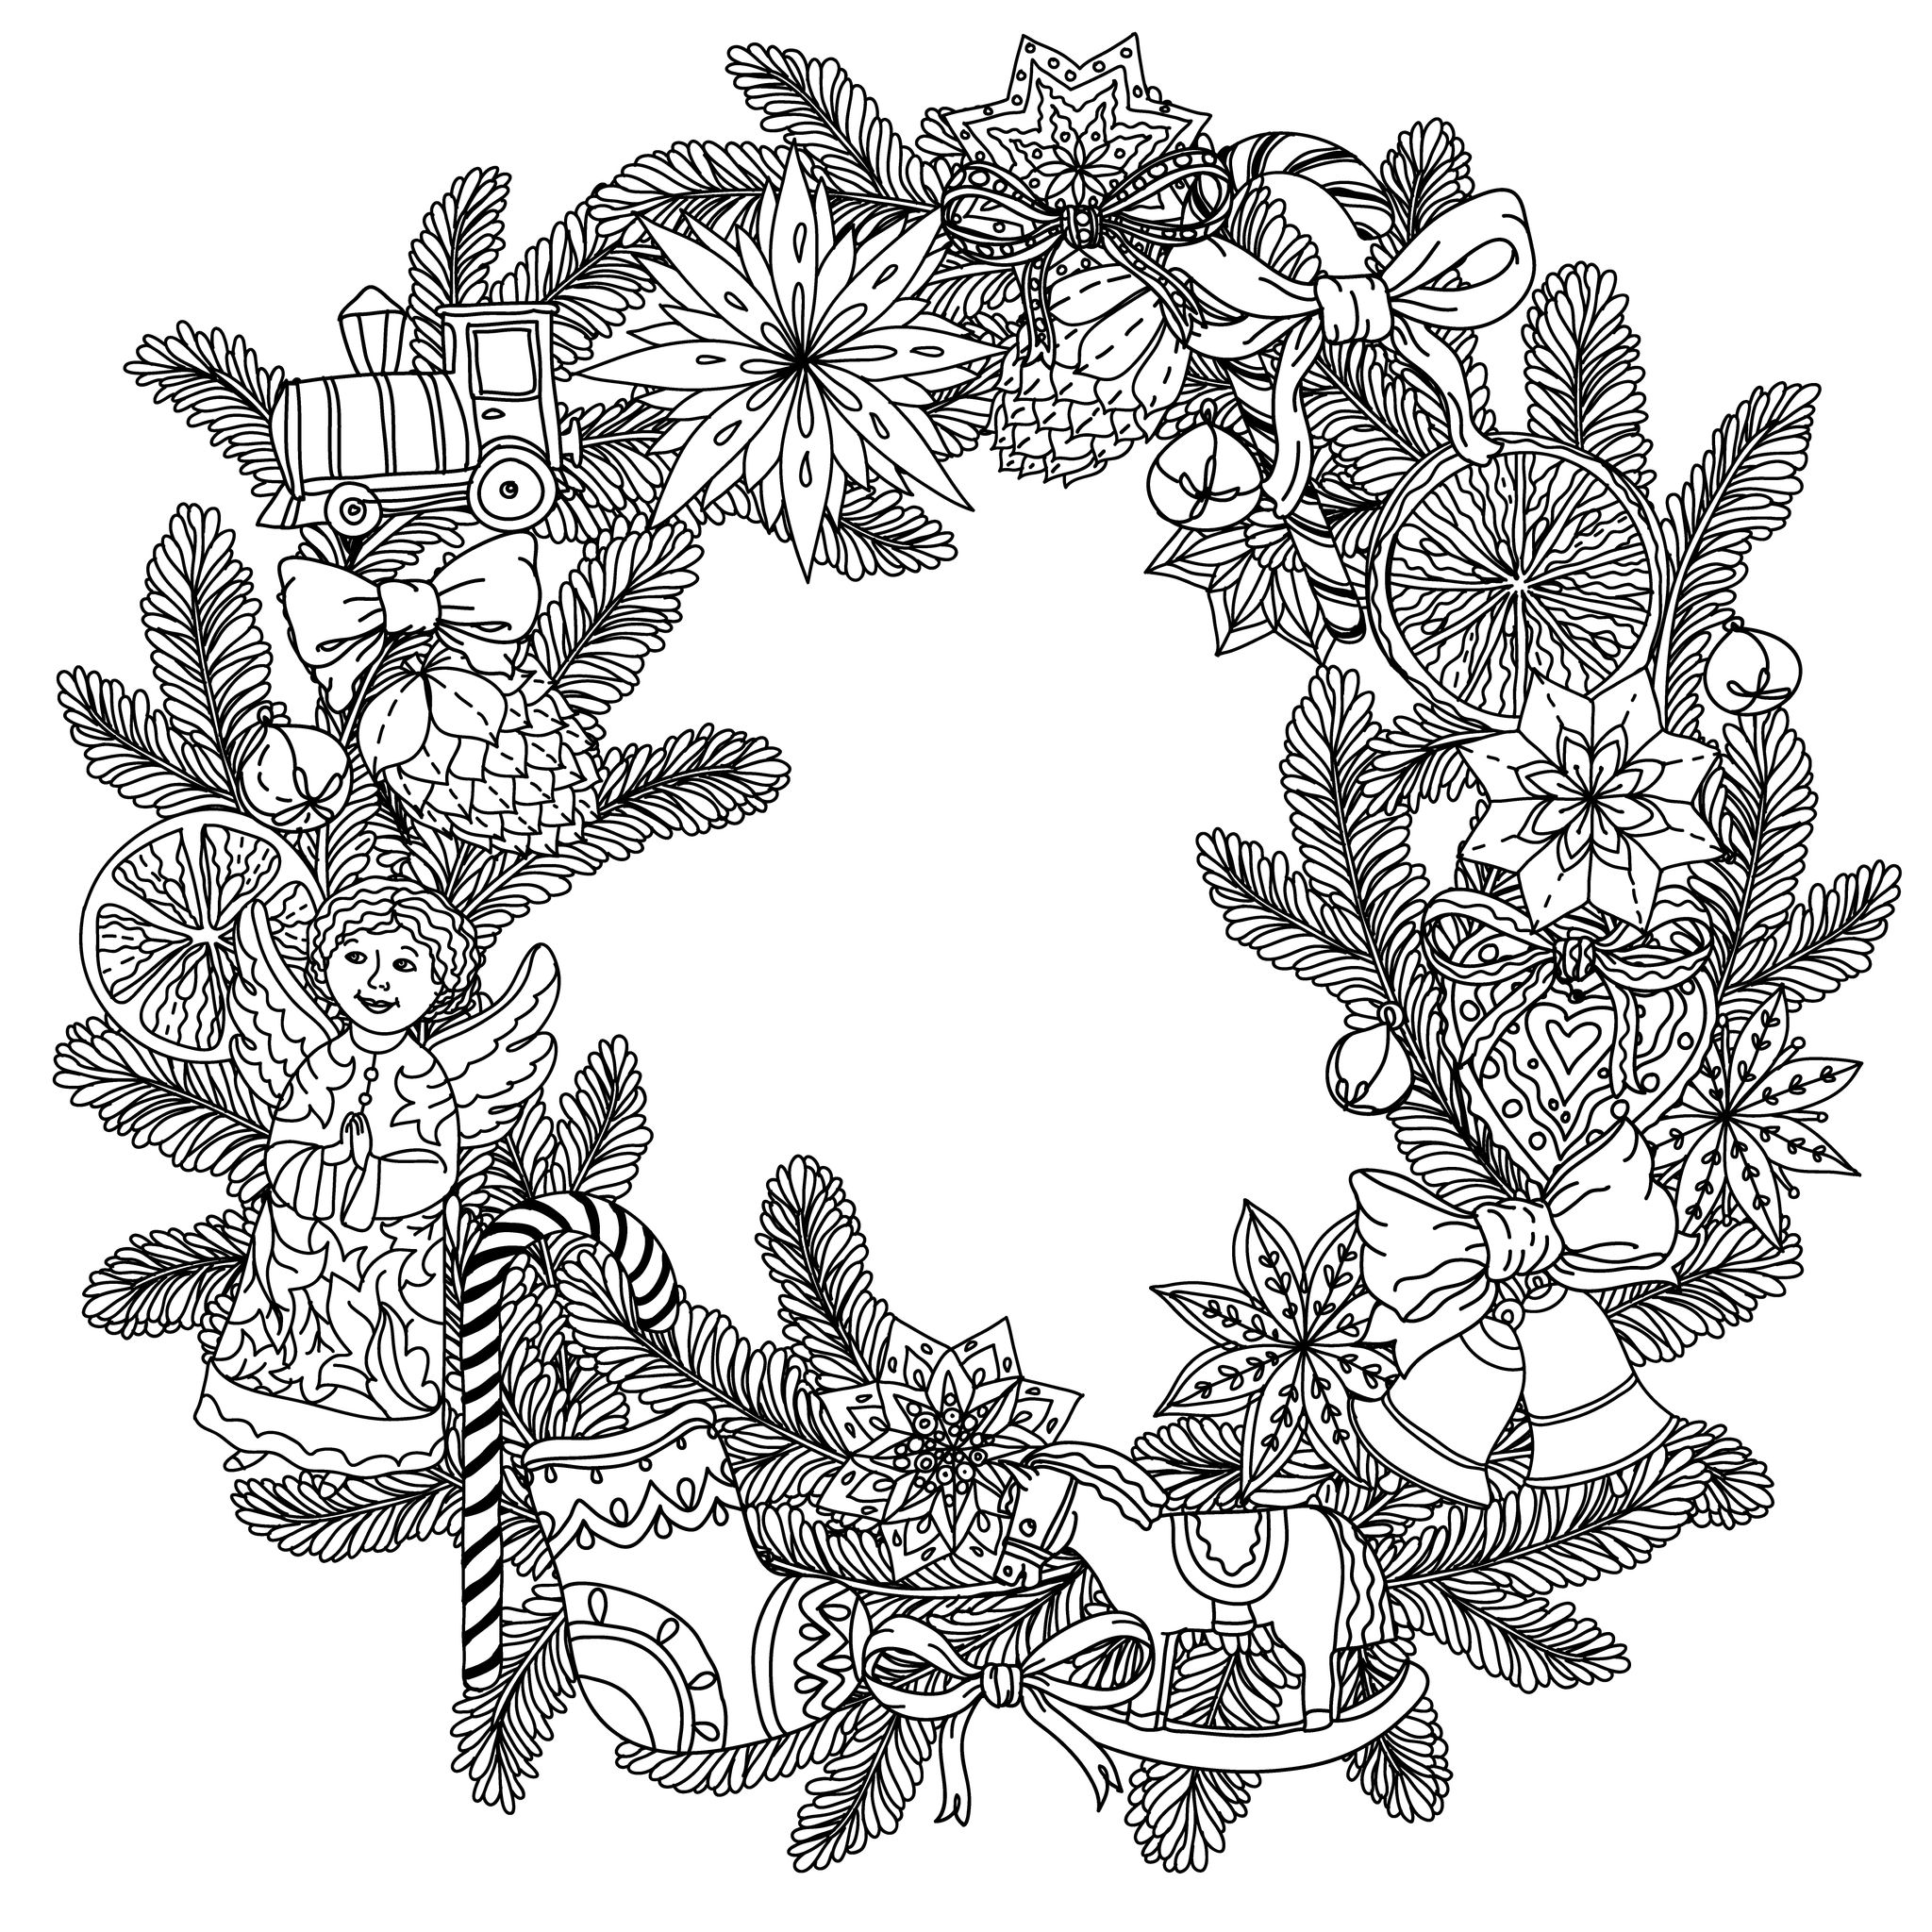 49525223 - christmas wreath with decorative items, black and white. the best for your design, textiles, posters, coloring bookA partir de la galerie : Noel